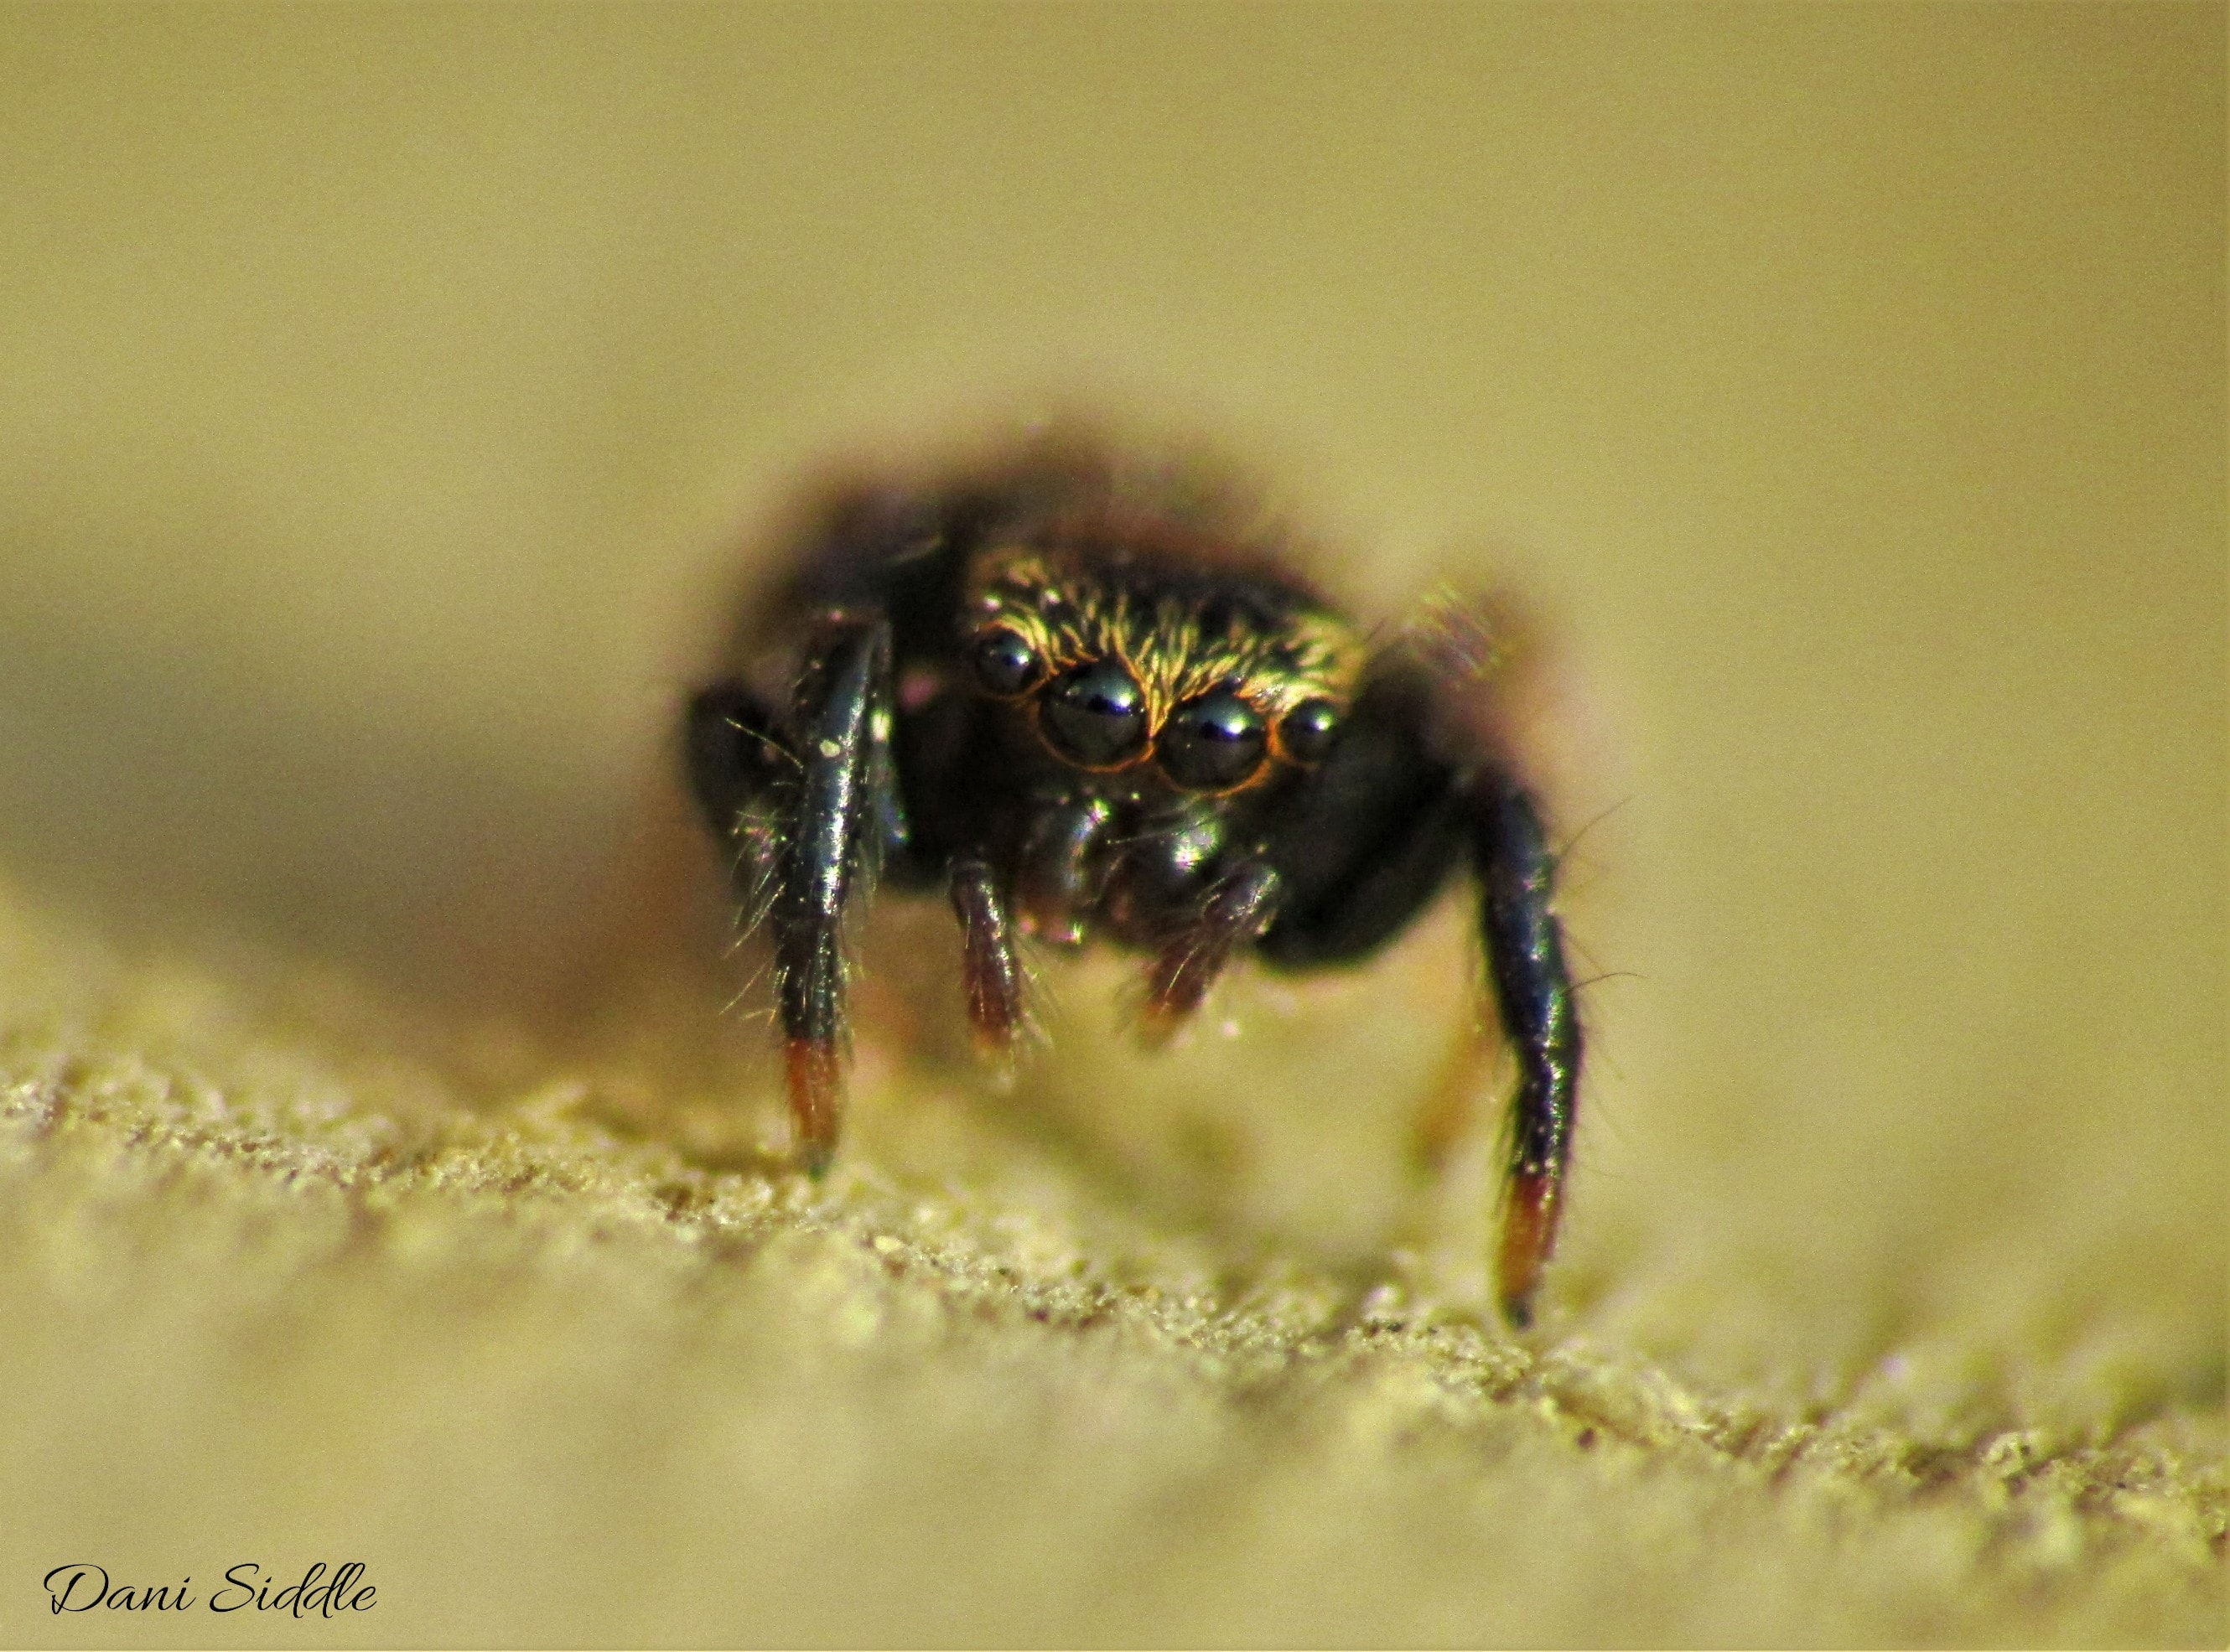 Picture of Paraphidippus aurantius (Emerald Jumping Spider) - Male - Eyes